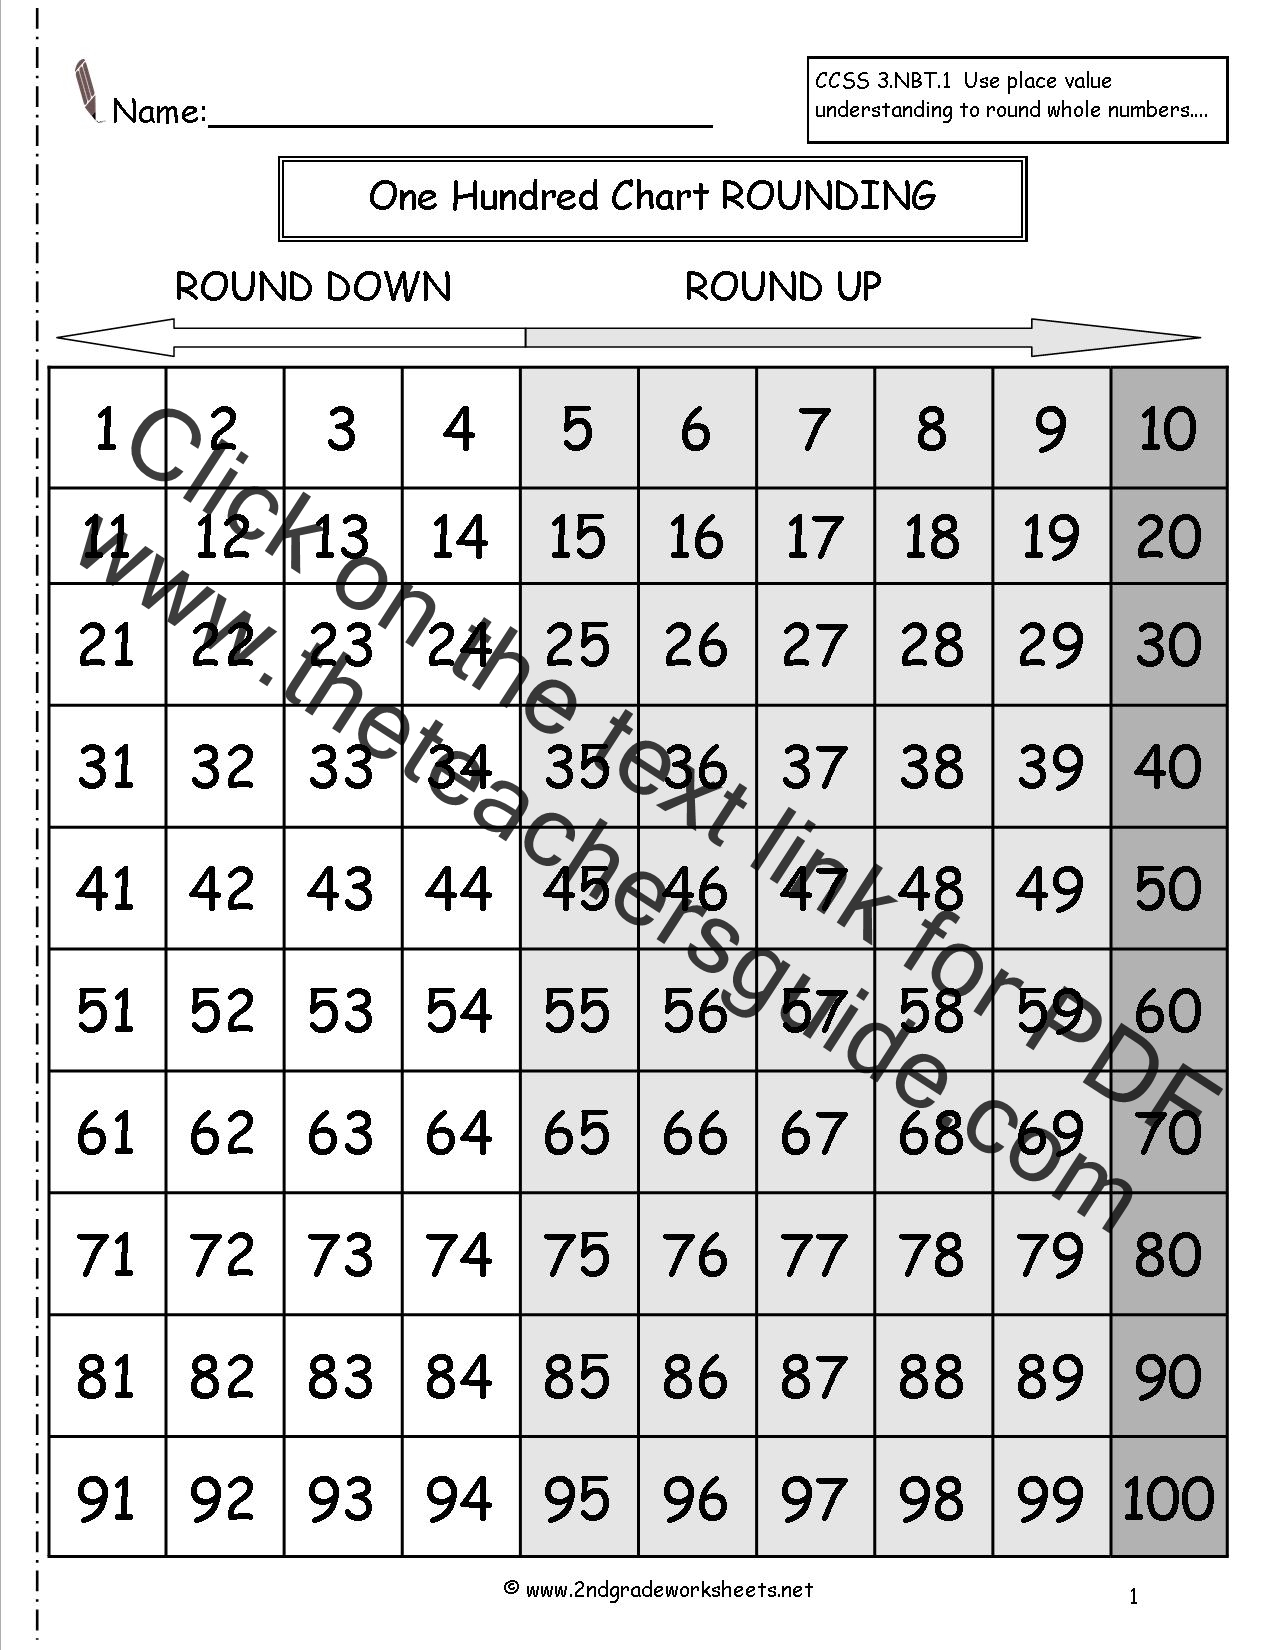 2nd Grade Rounding Worksheets